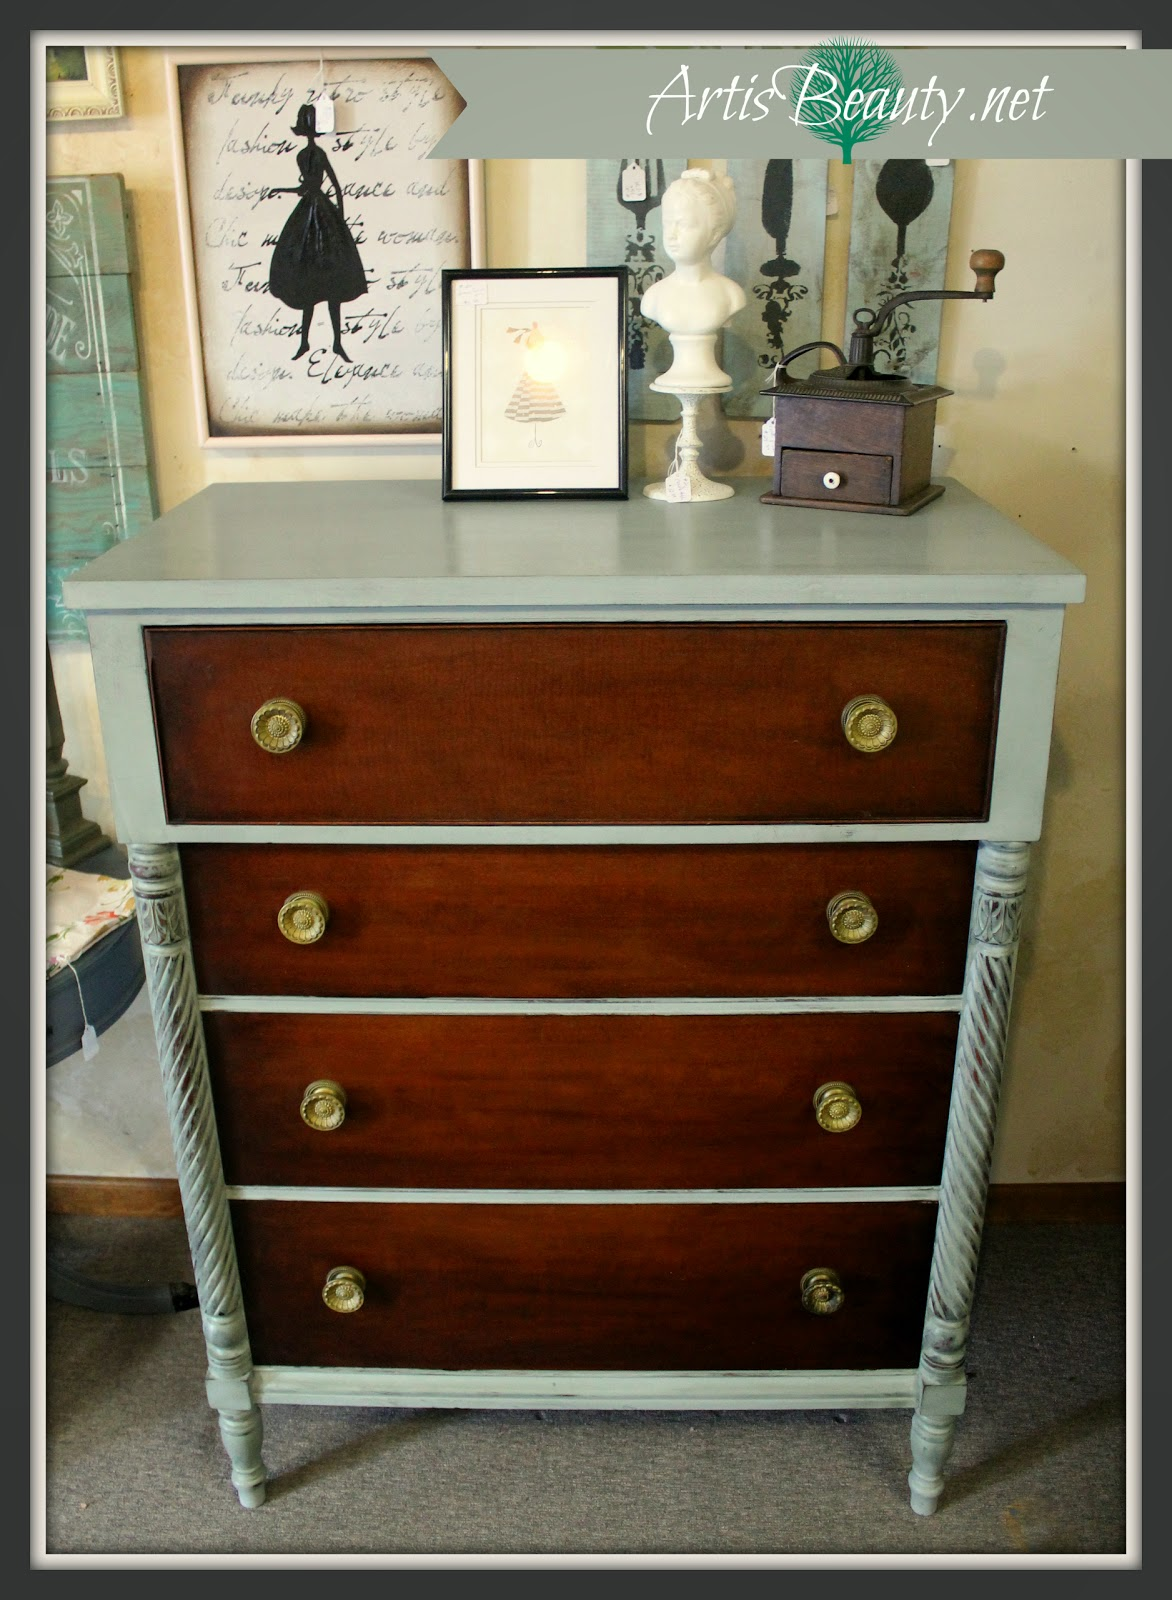 antique-kindel-grand-rapids-chest-of-drawers-makeover-art-is-beauty